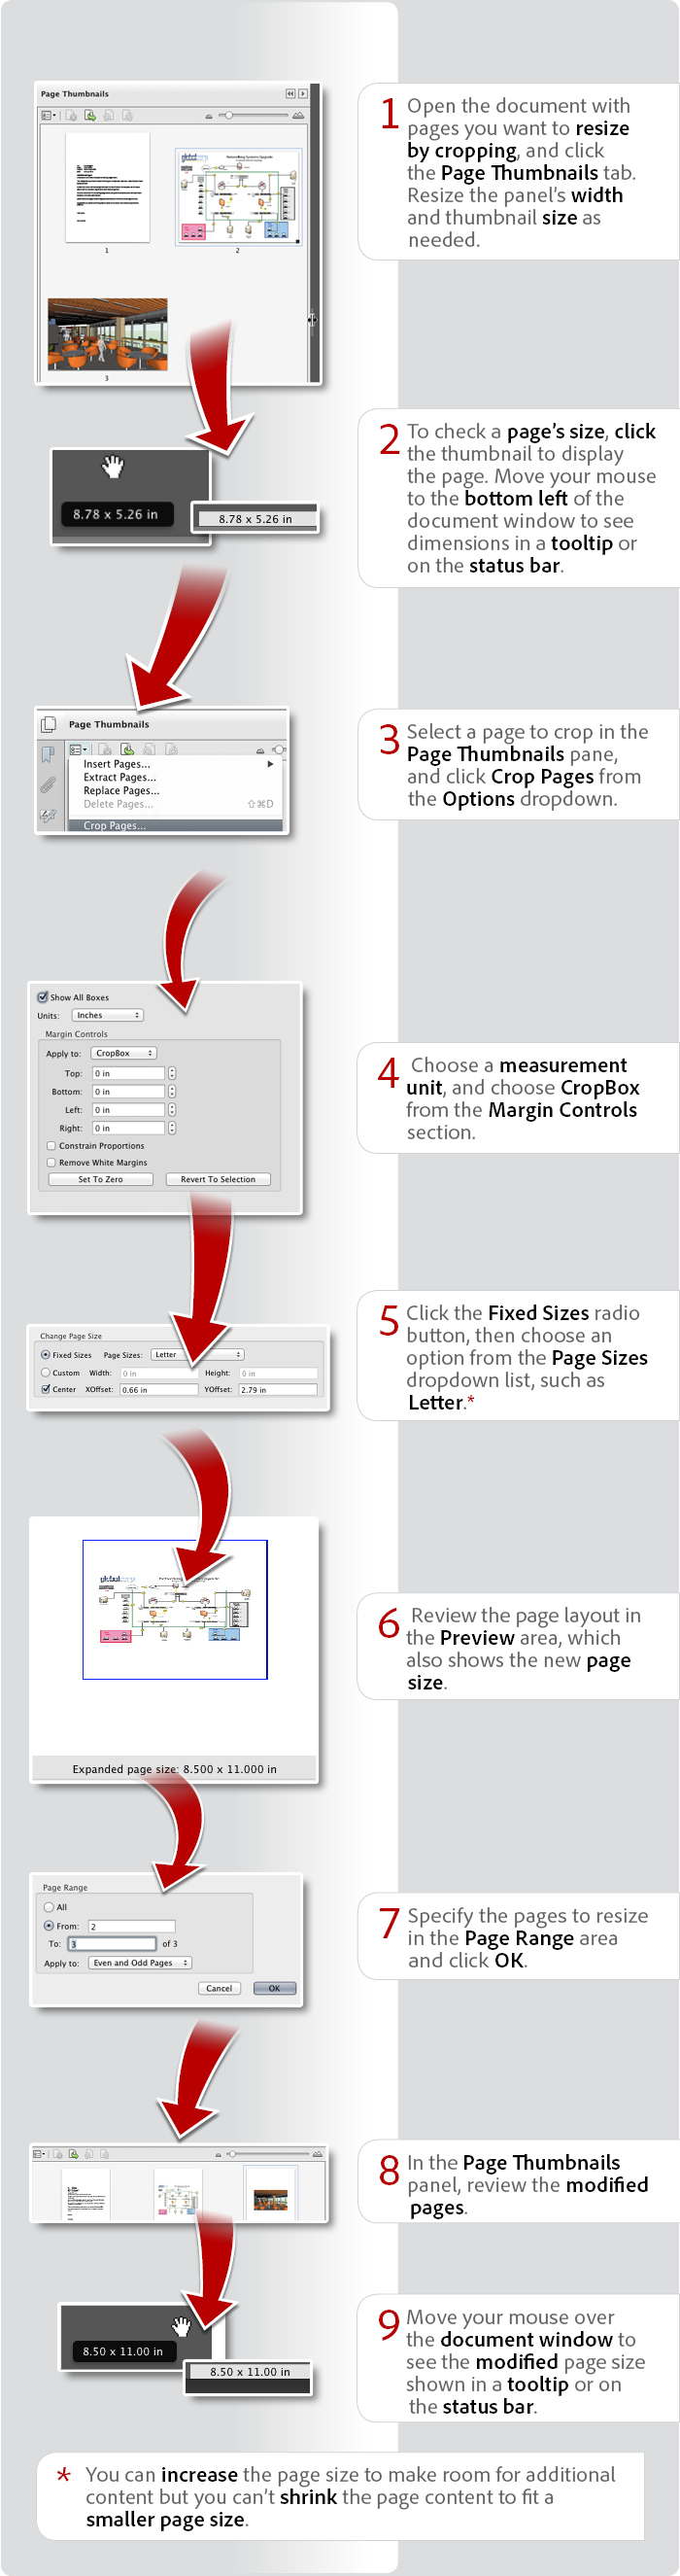 How to resize pages in a PDF file using Acrobat XI